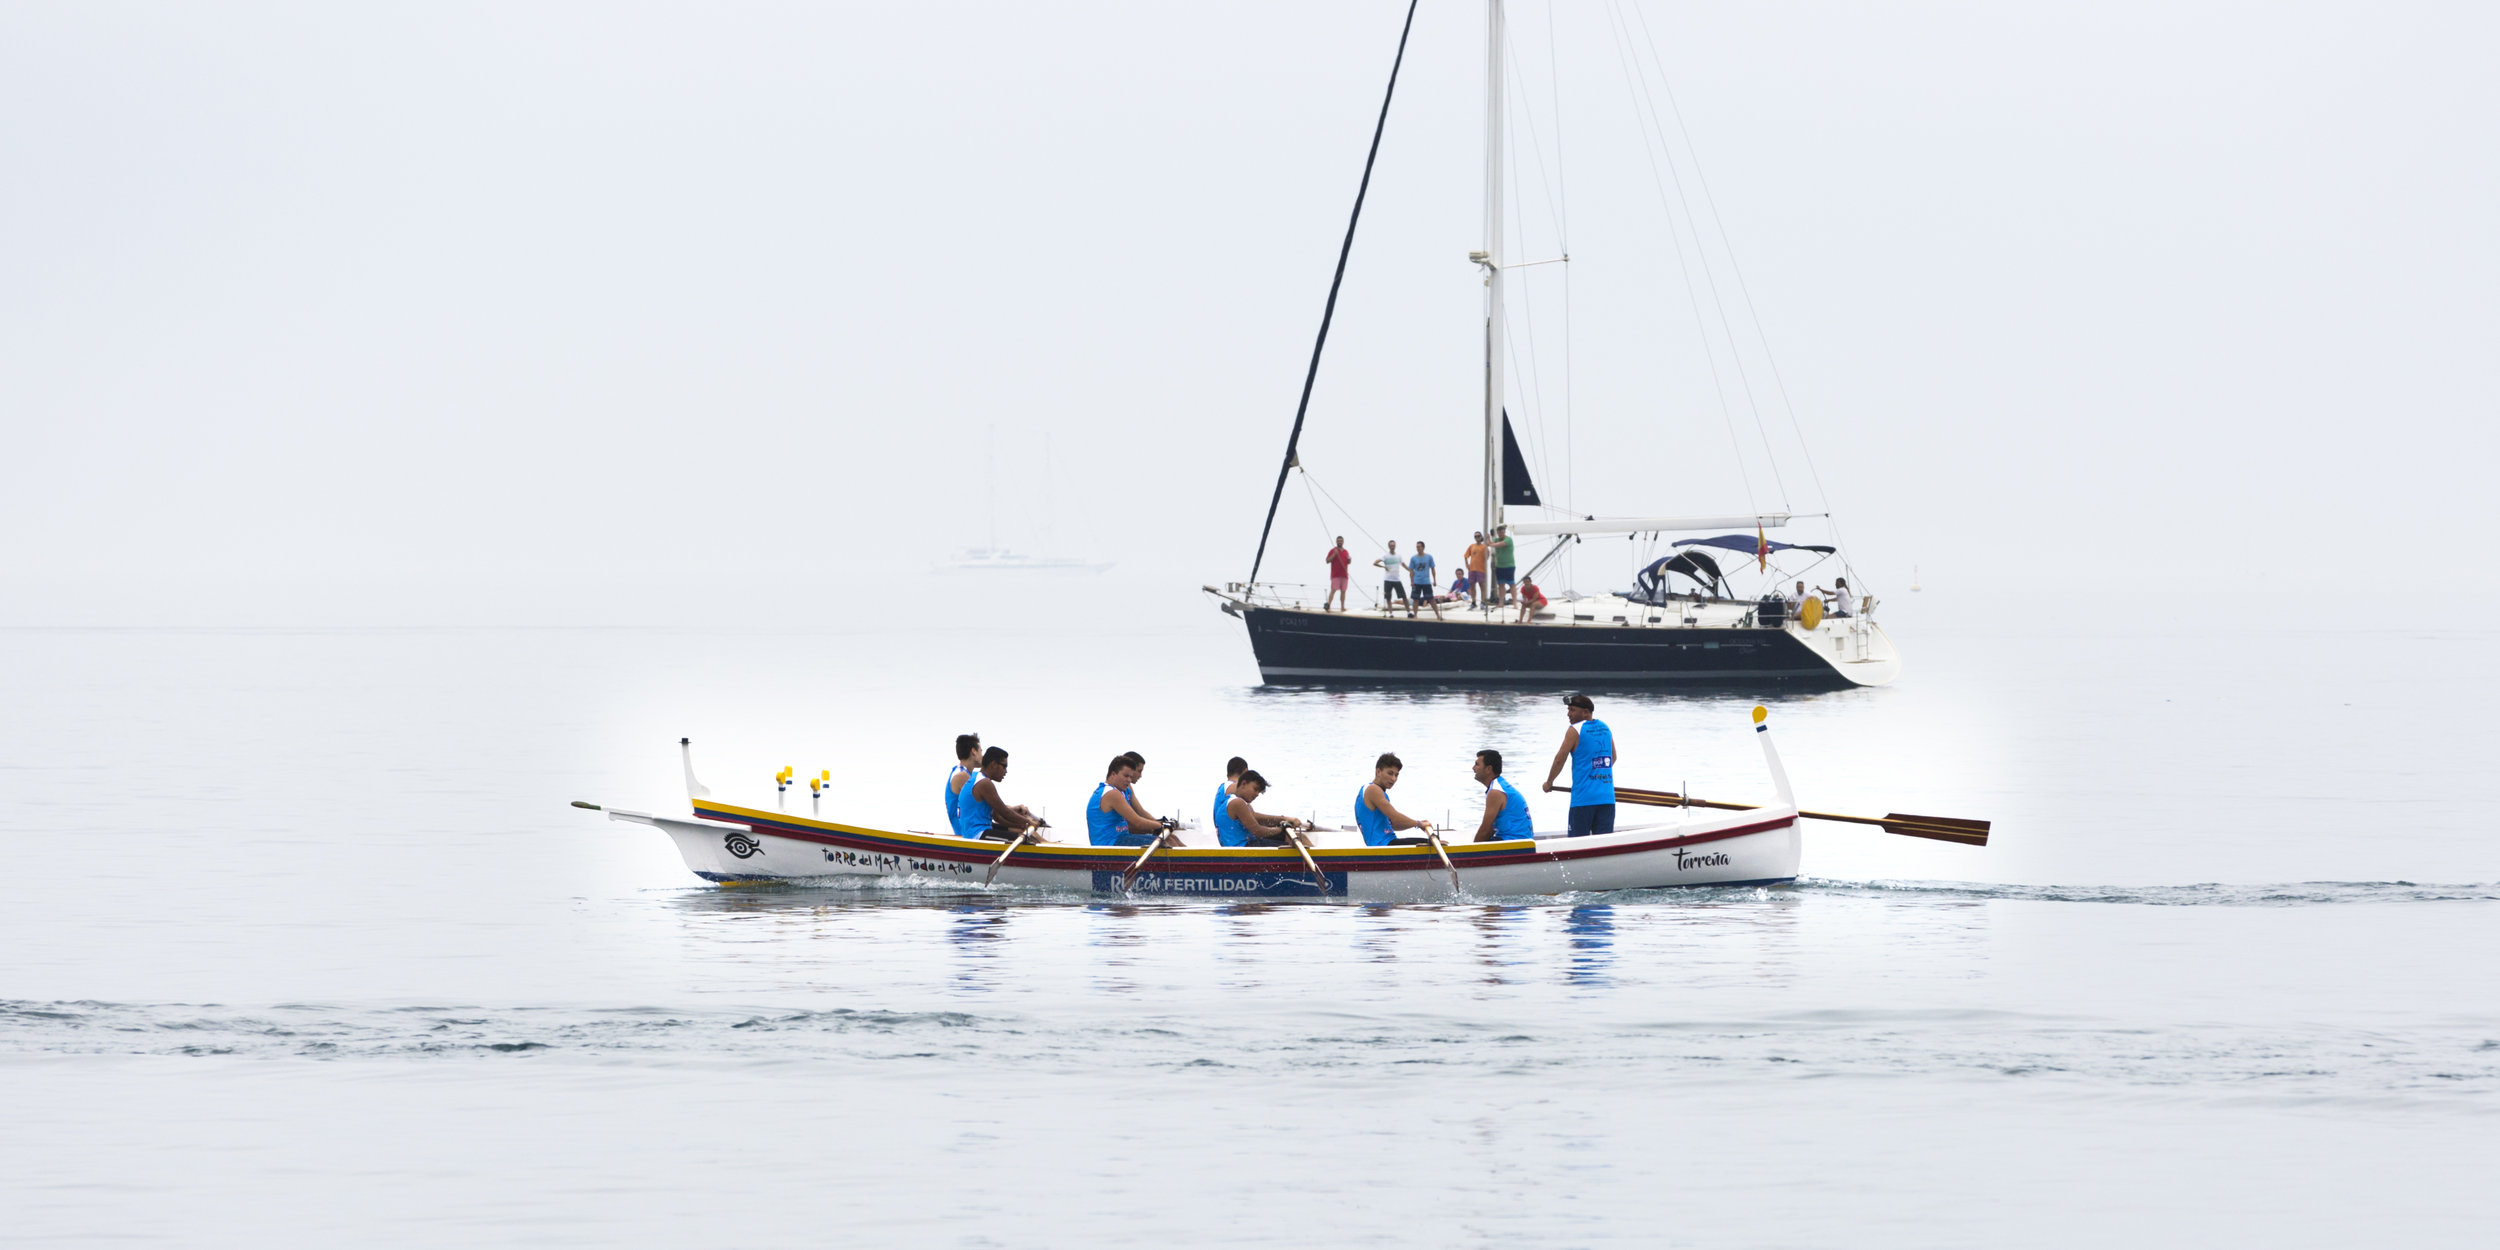 Answering these questions will get your team in the same boat, rowing in the same direction.